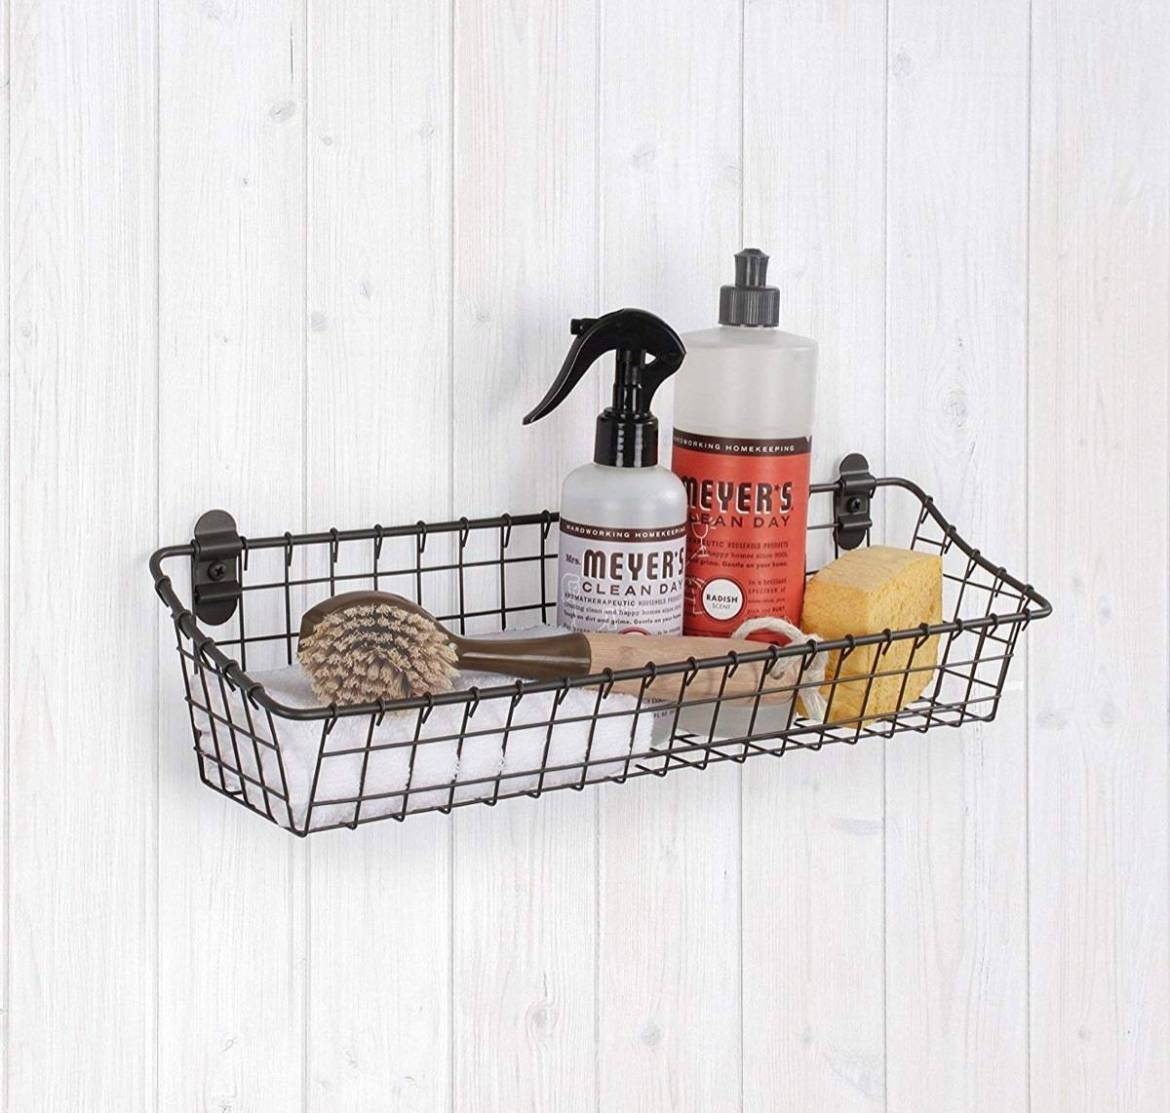 Wall-mounted wire basket